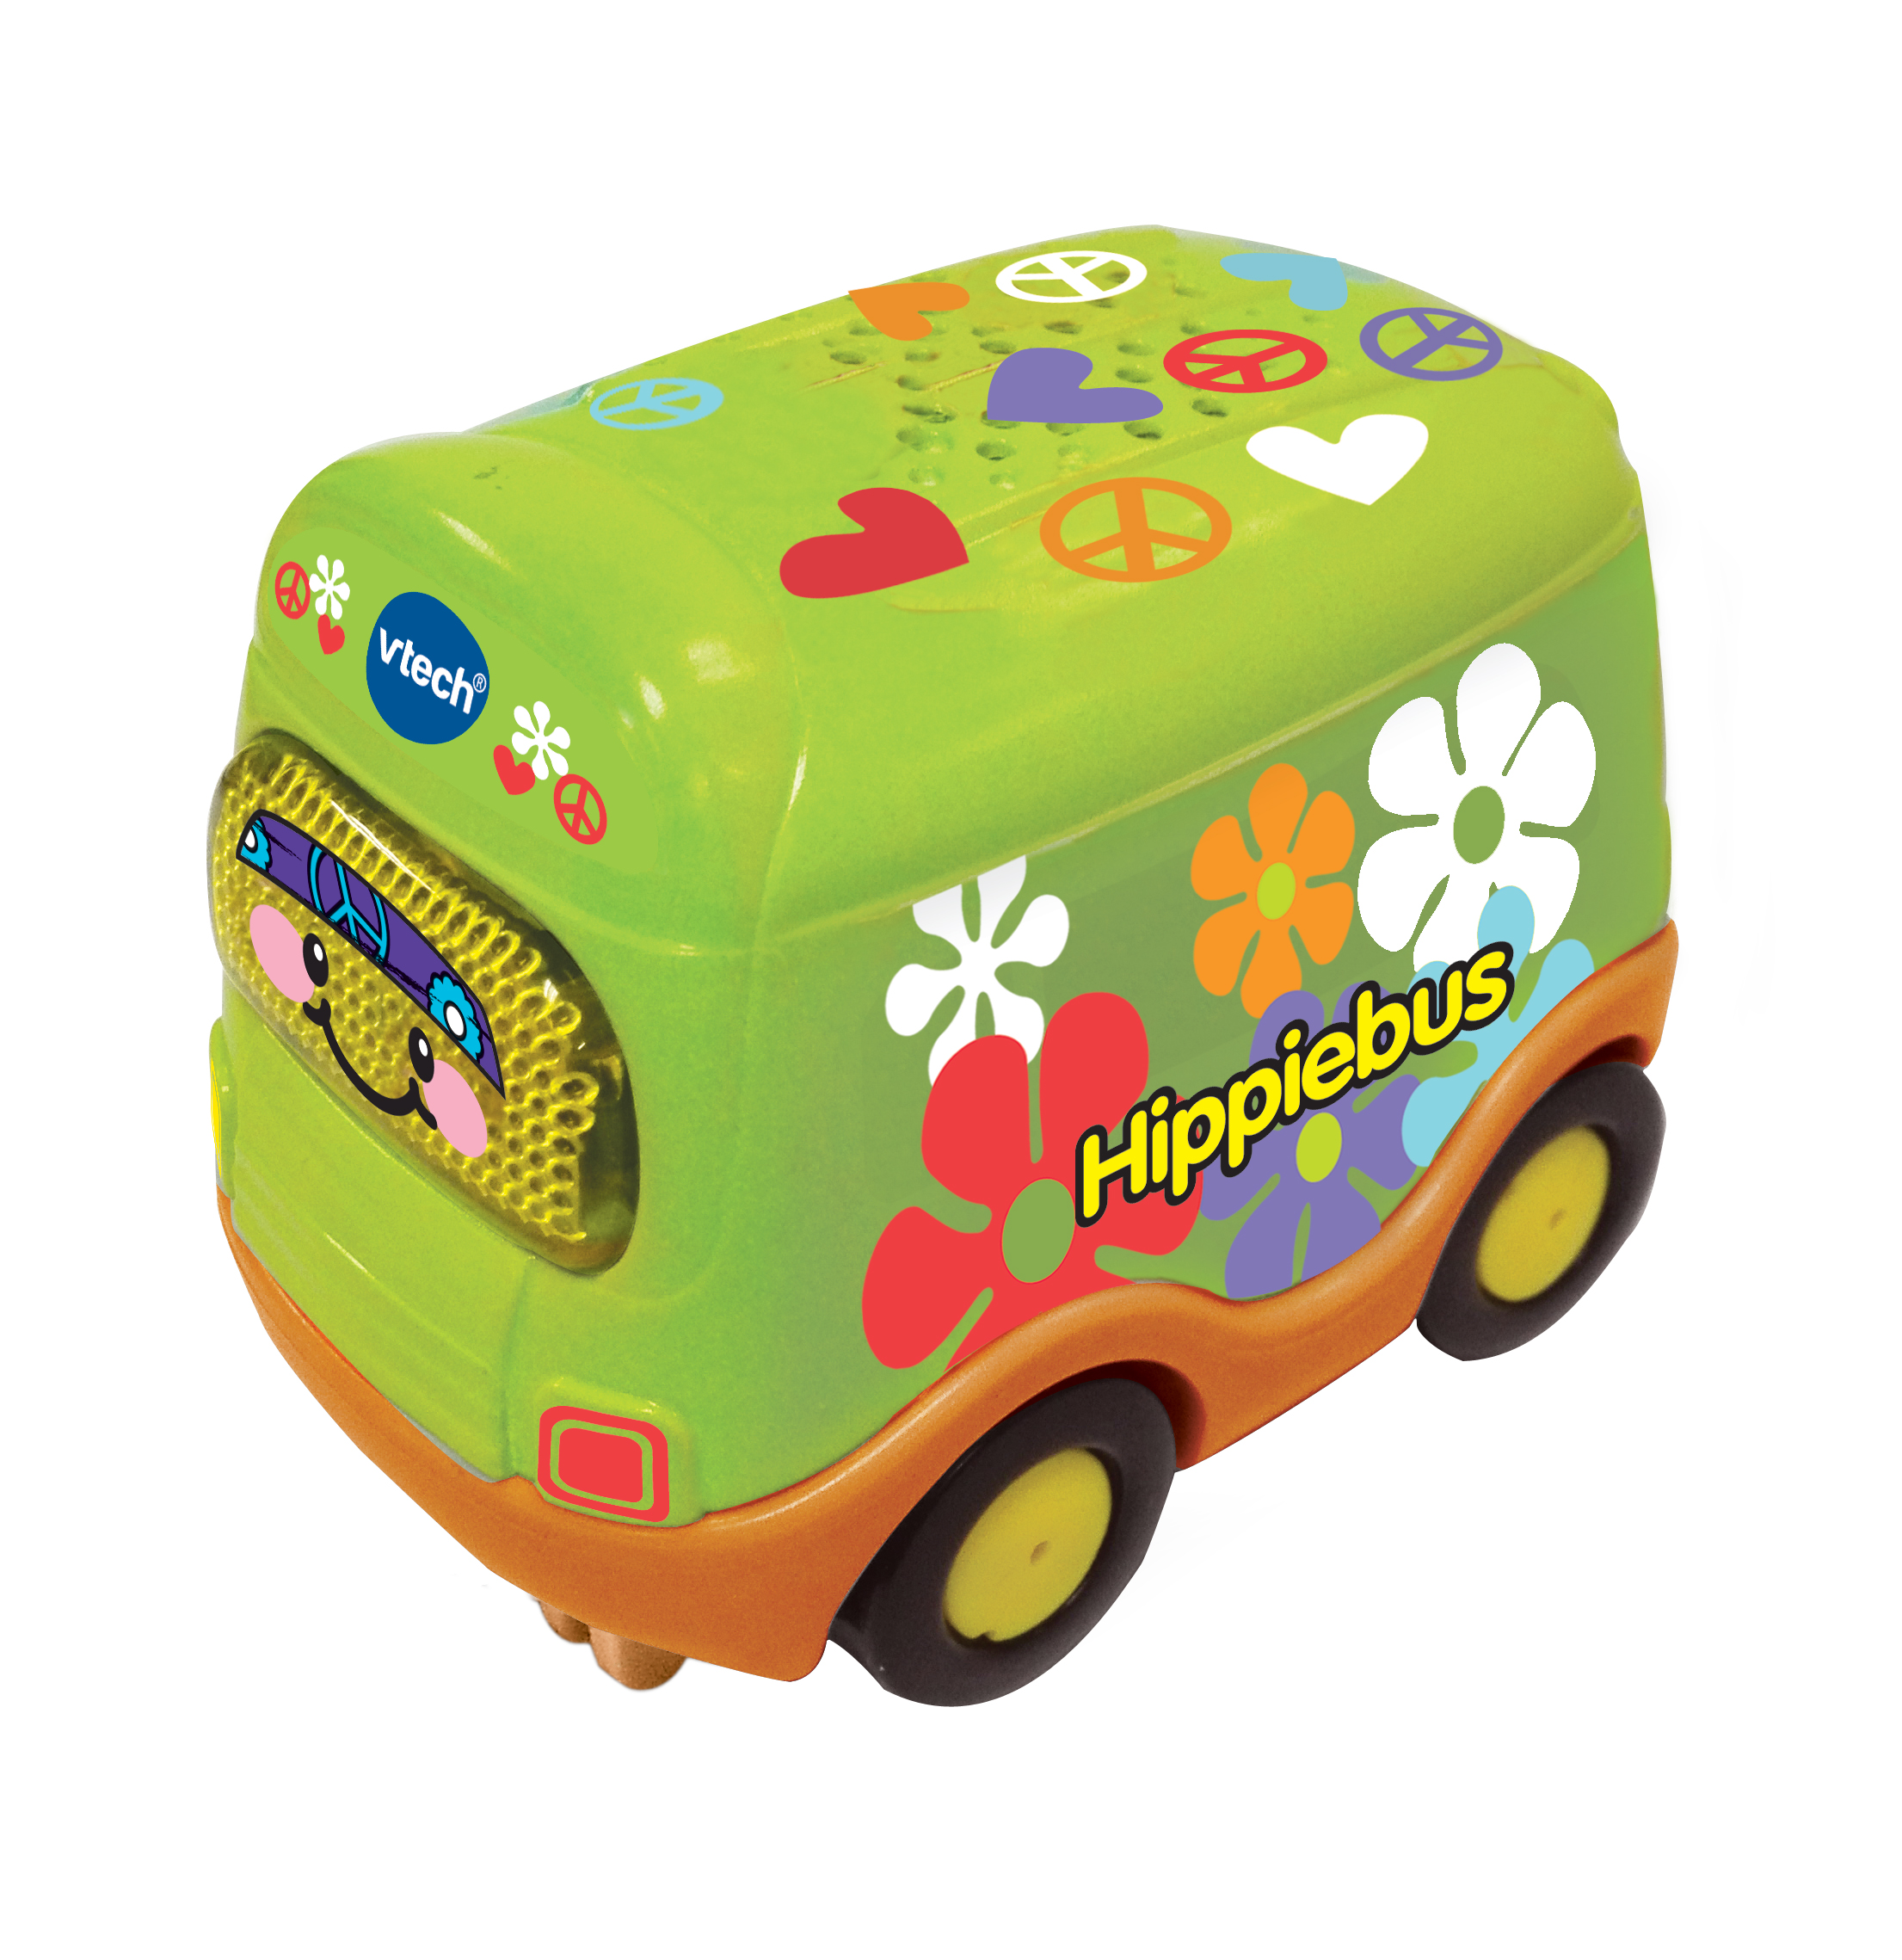 164342 TTA Harm Hippiebus (limited edition) main